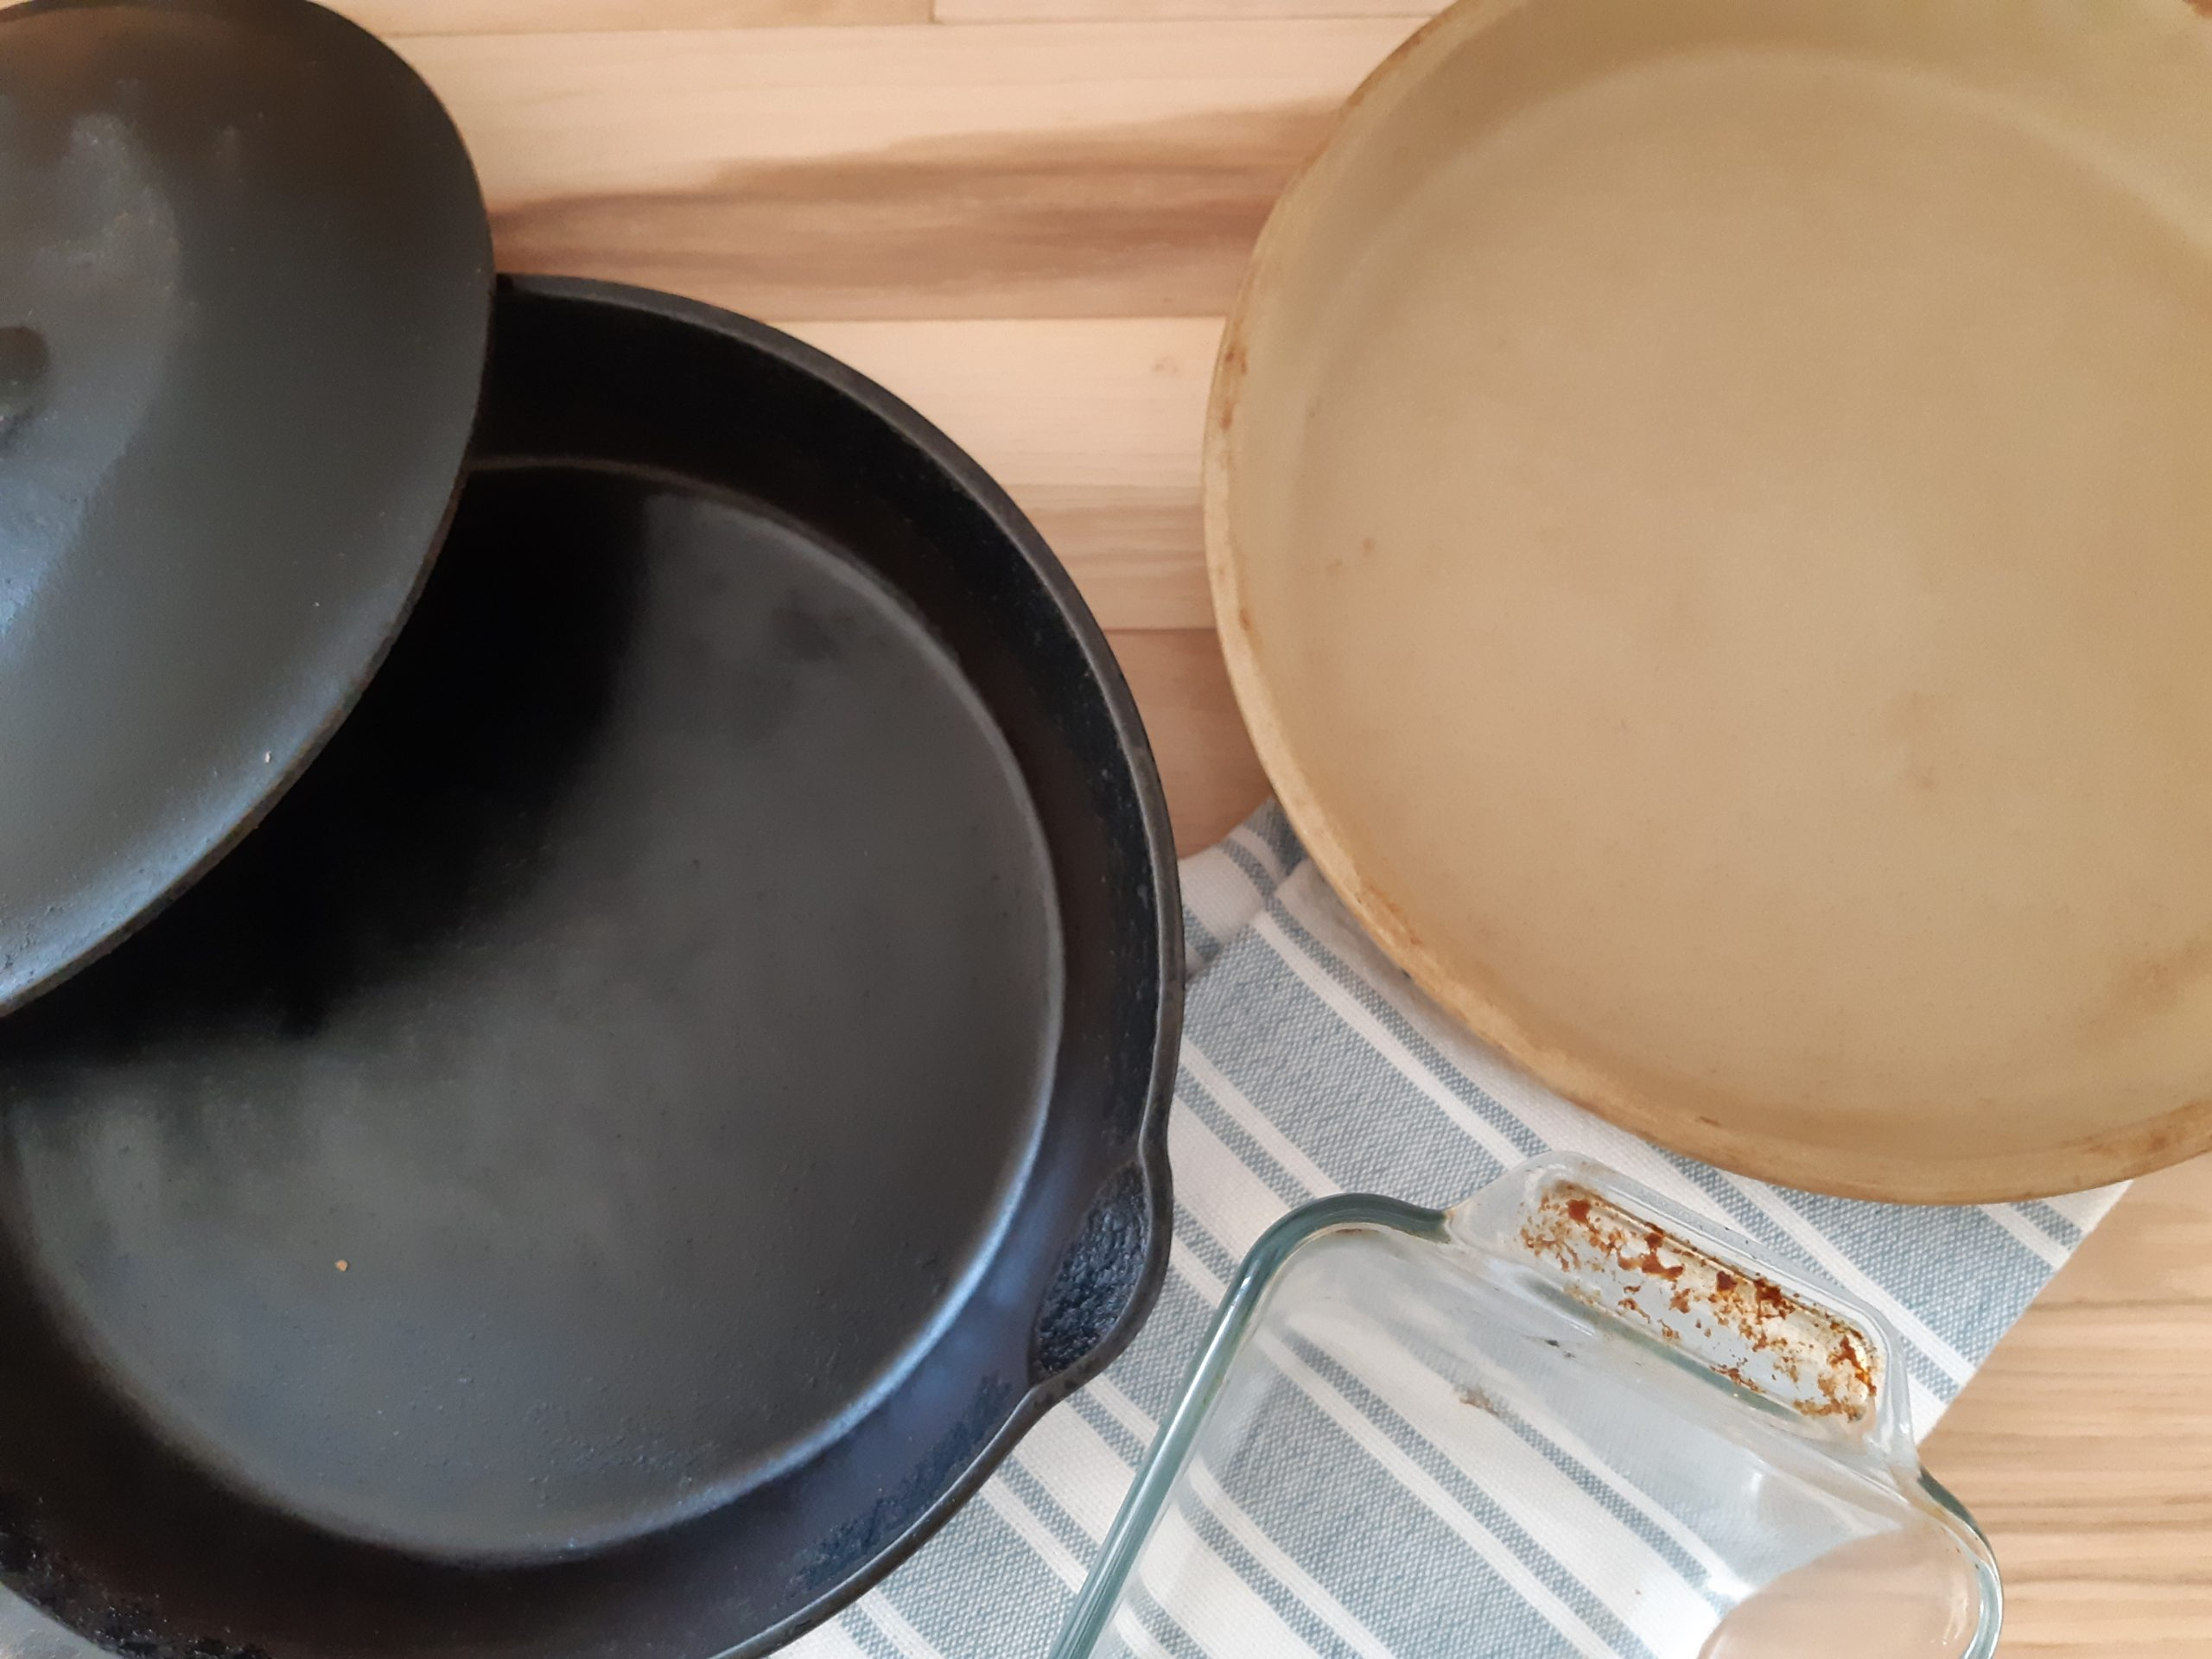 Healthy Cookware Options for the Real Food Kitchen